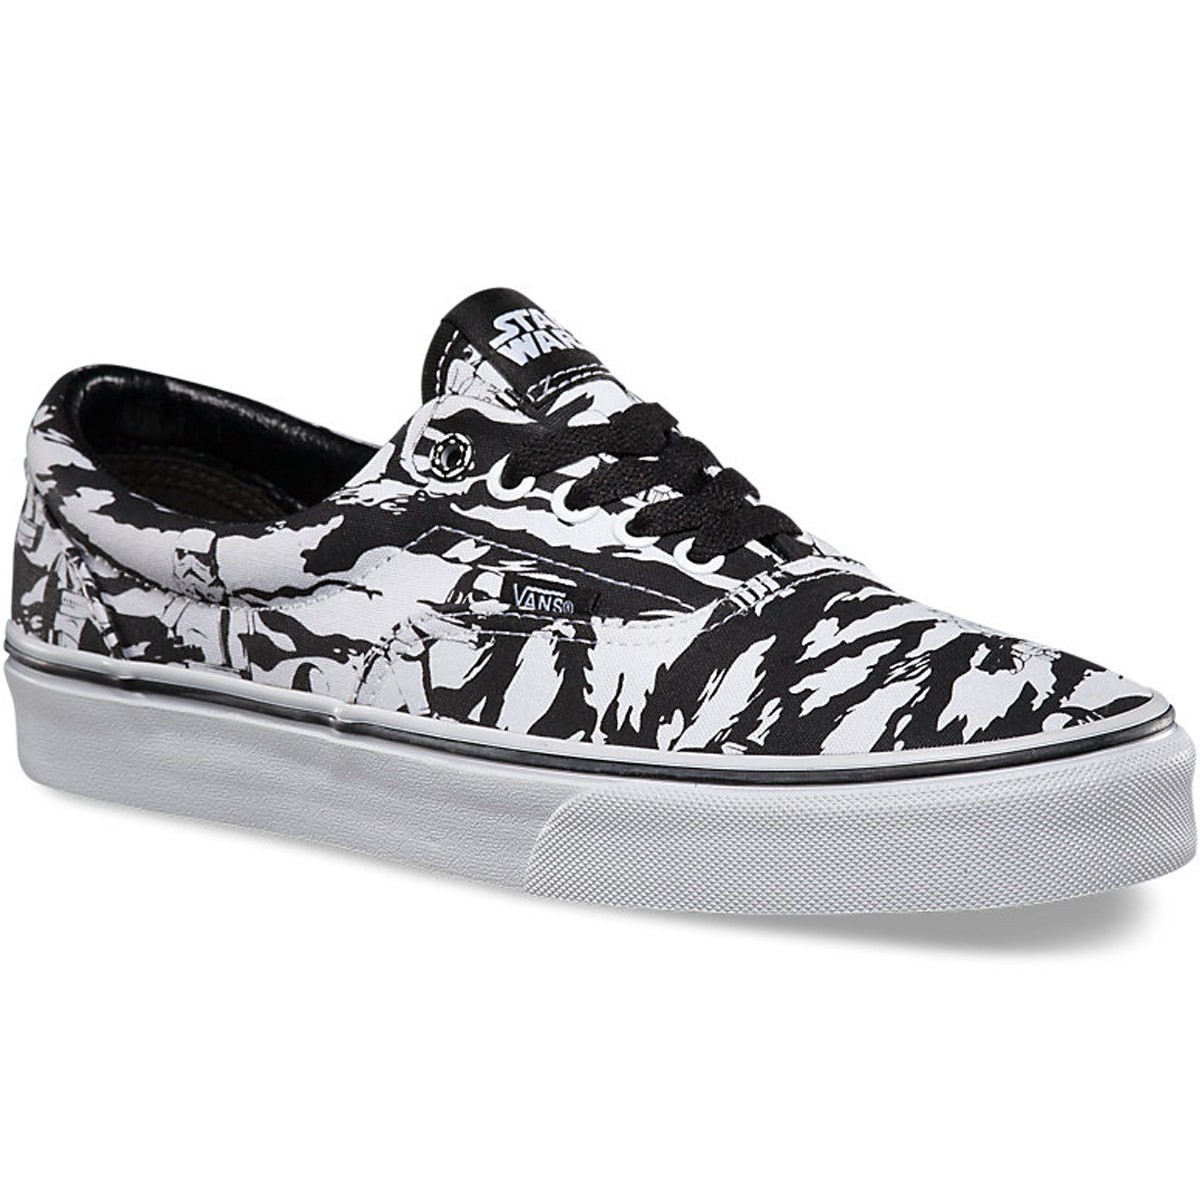 f7972f56df Vans Star Wars Era Shoes - Dark Side Storm Camo - 13.0